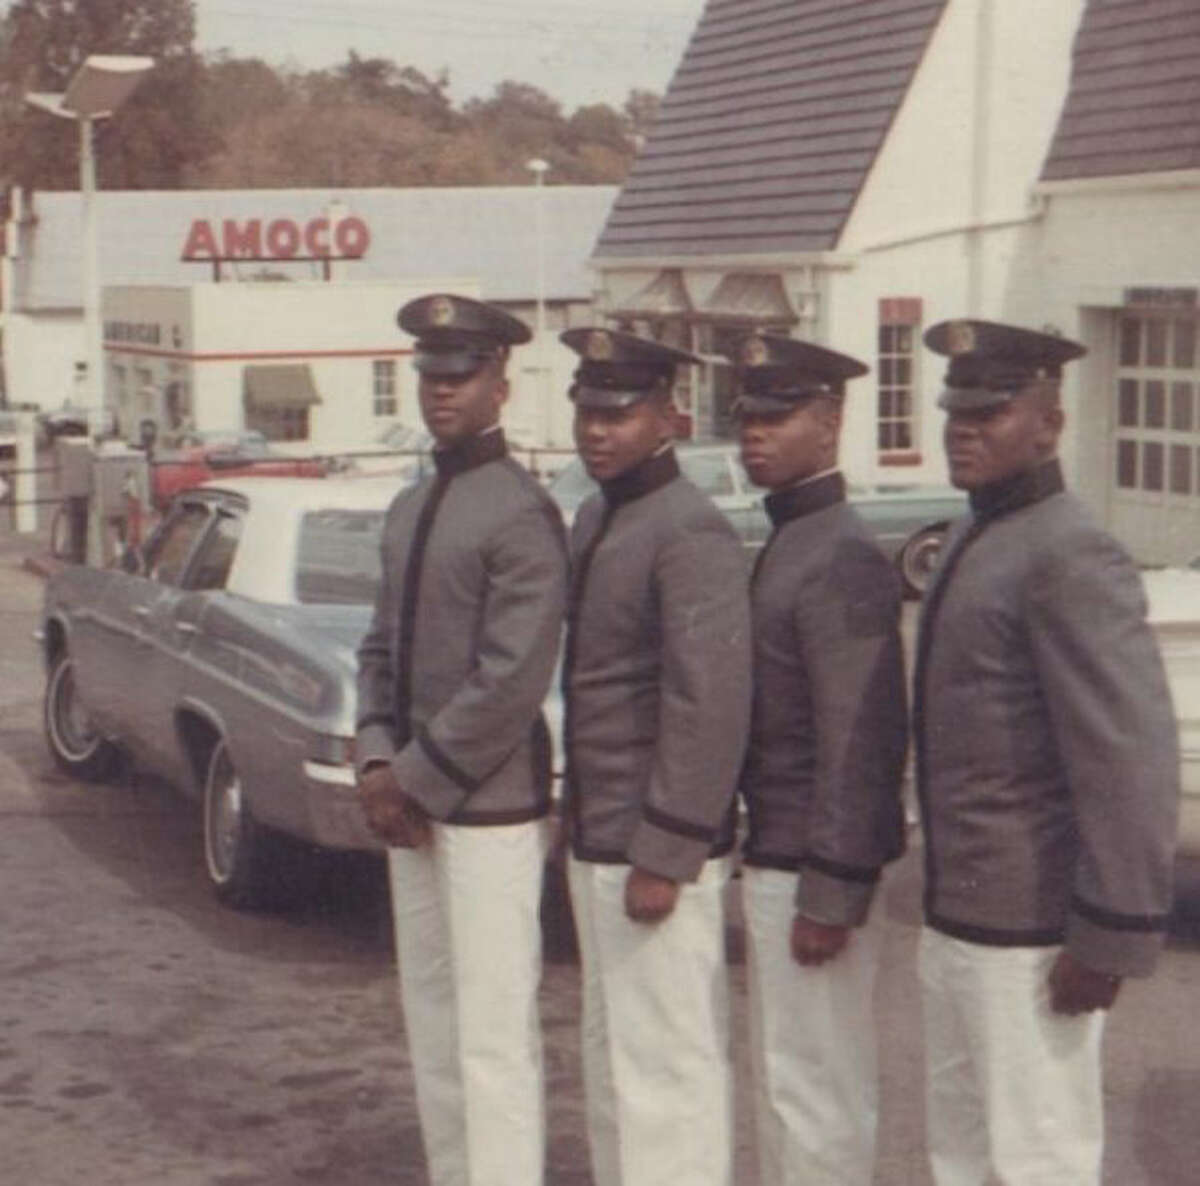 Philip Wilkerson, Adam Randolph, Harry Gore and Dick Valentine, four of the first Black students to matriculate at the Virginia Military Institute, are pictured in 1968.